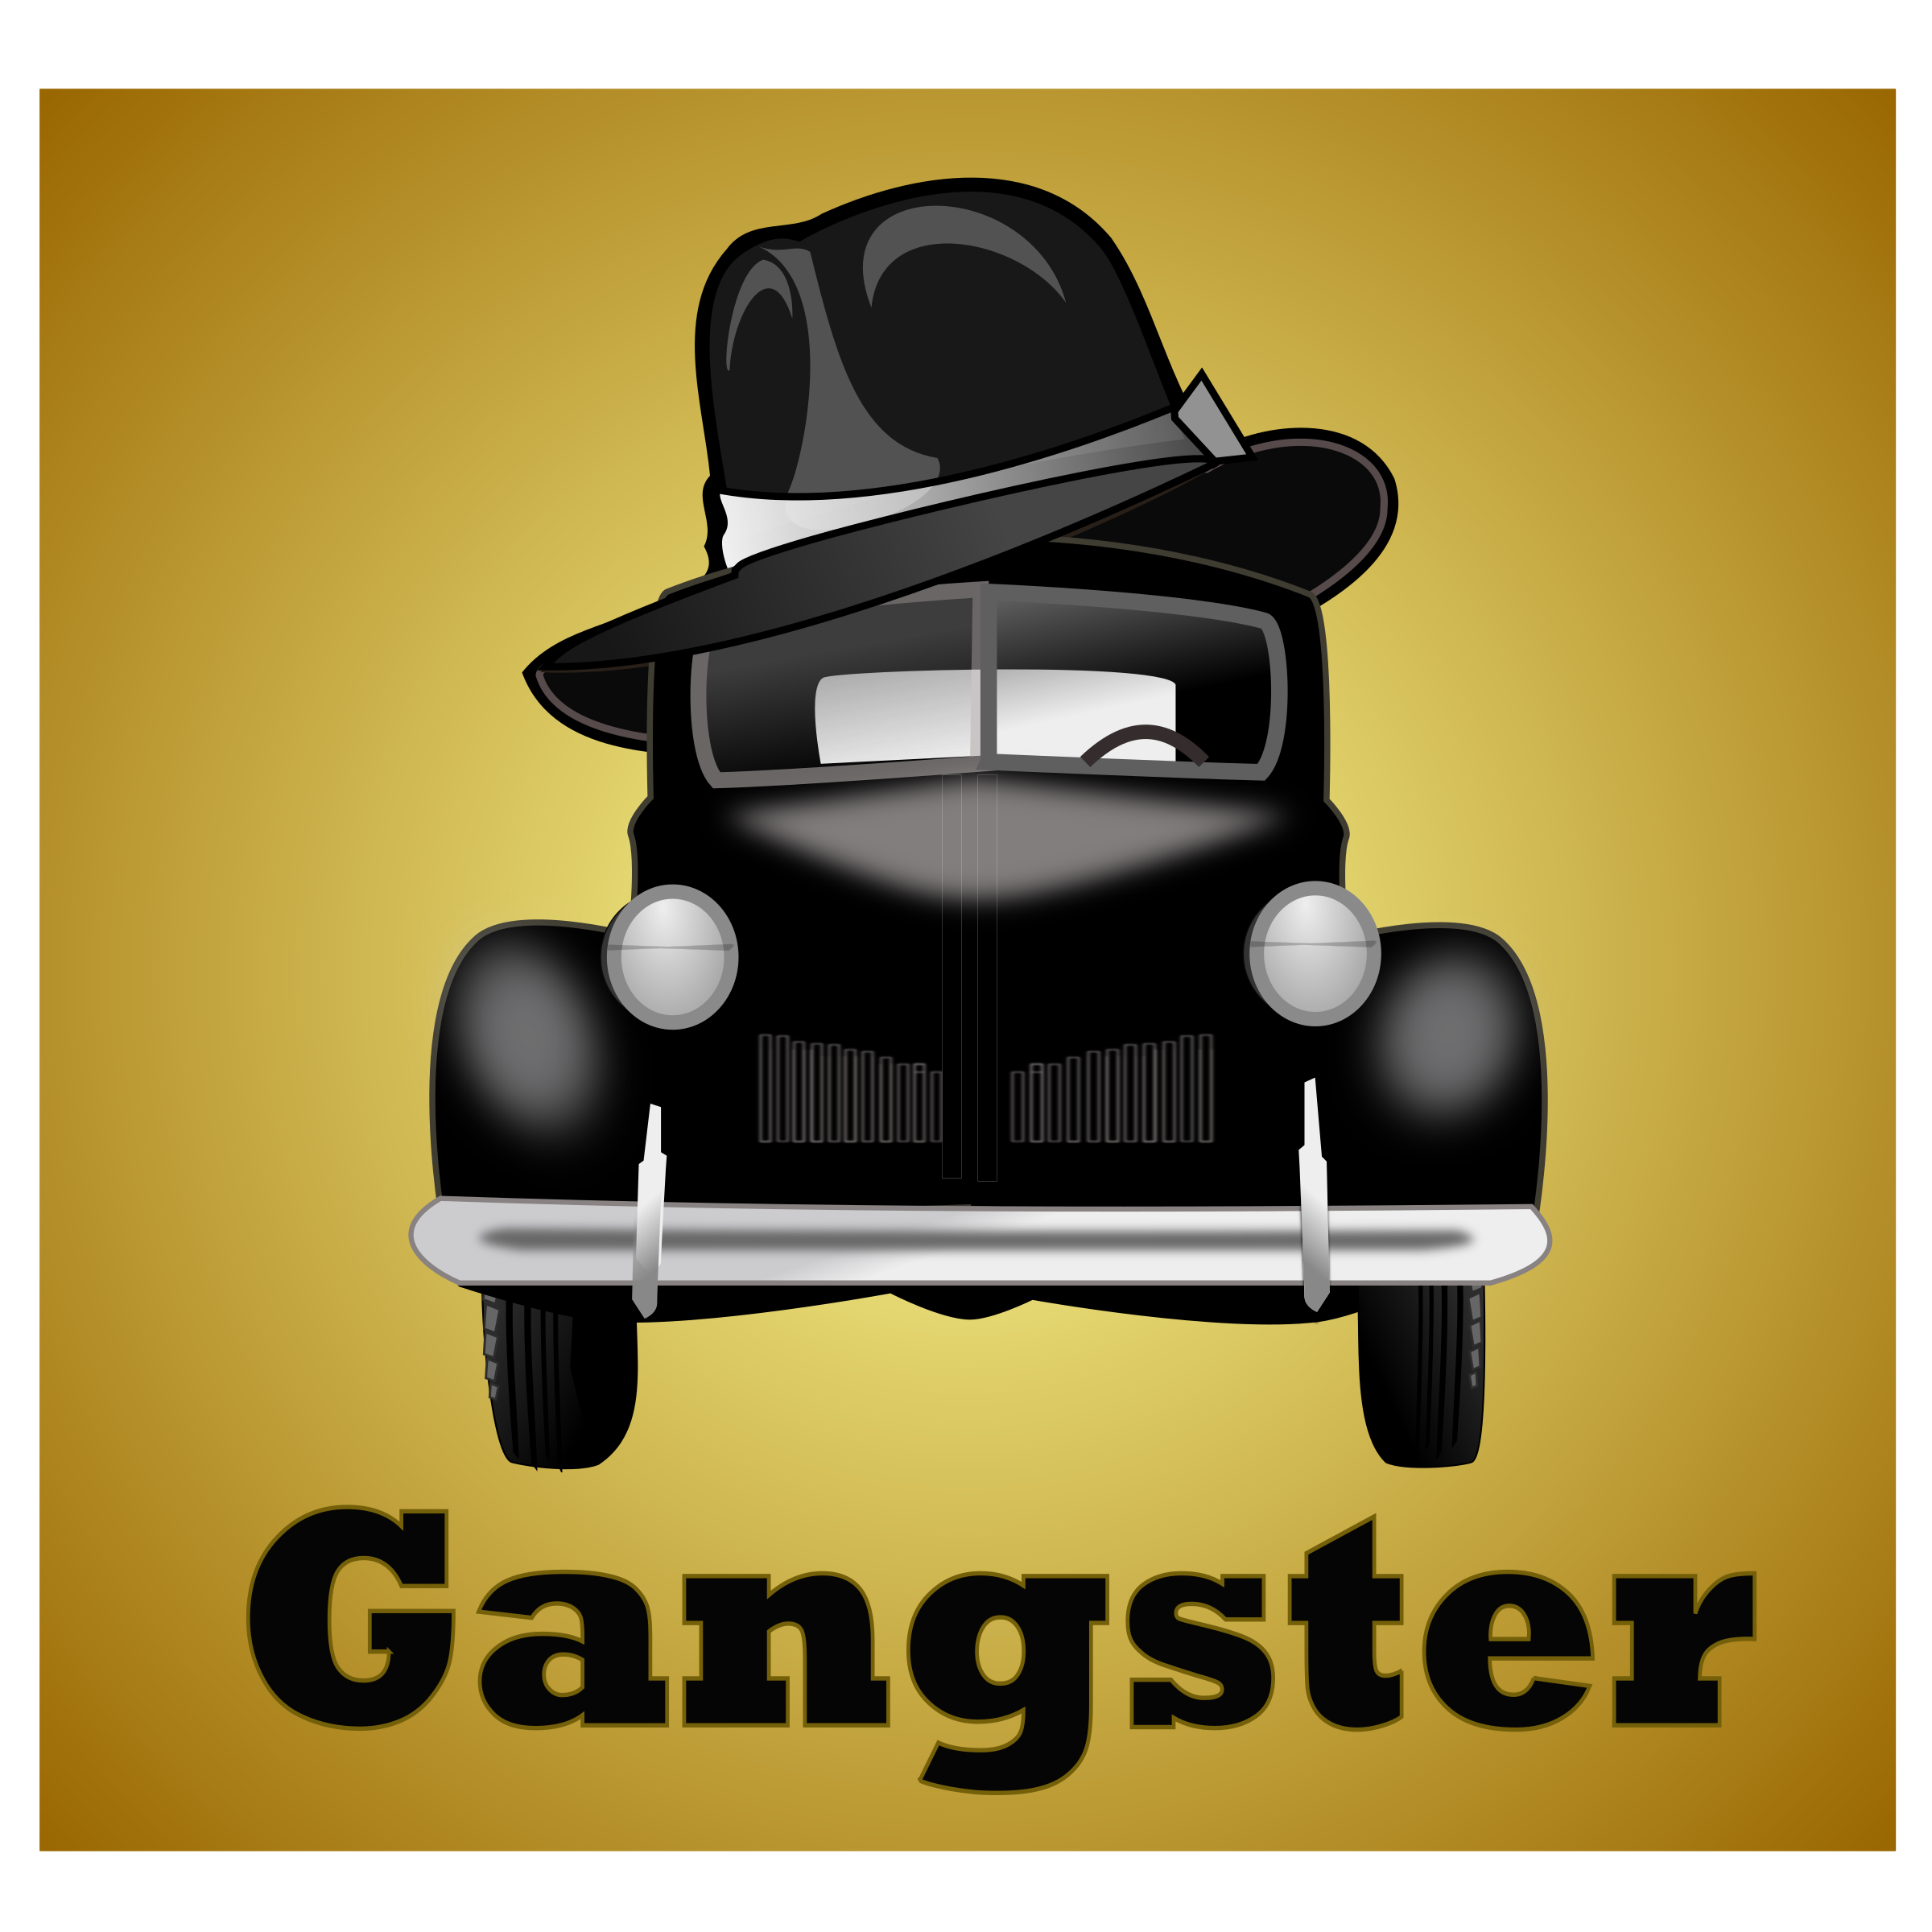 gangster-illustration by netalloy